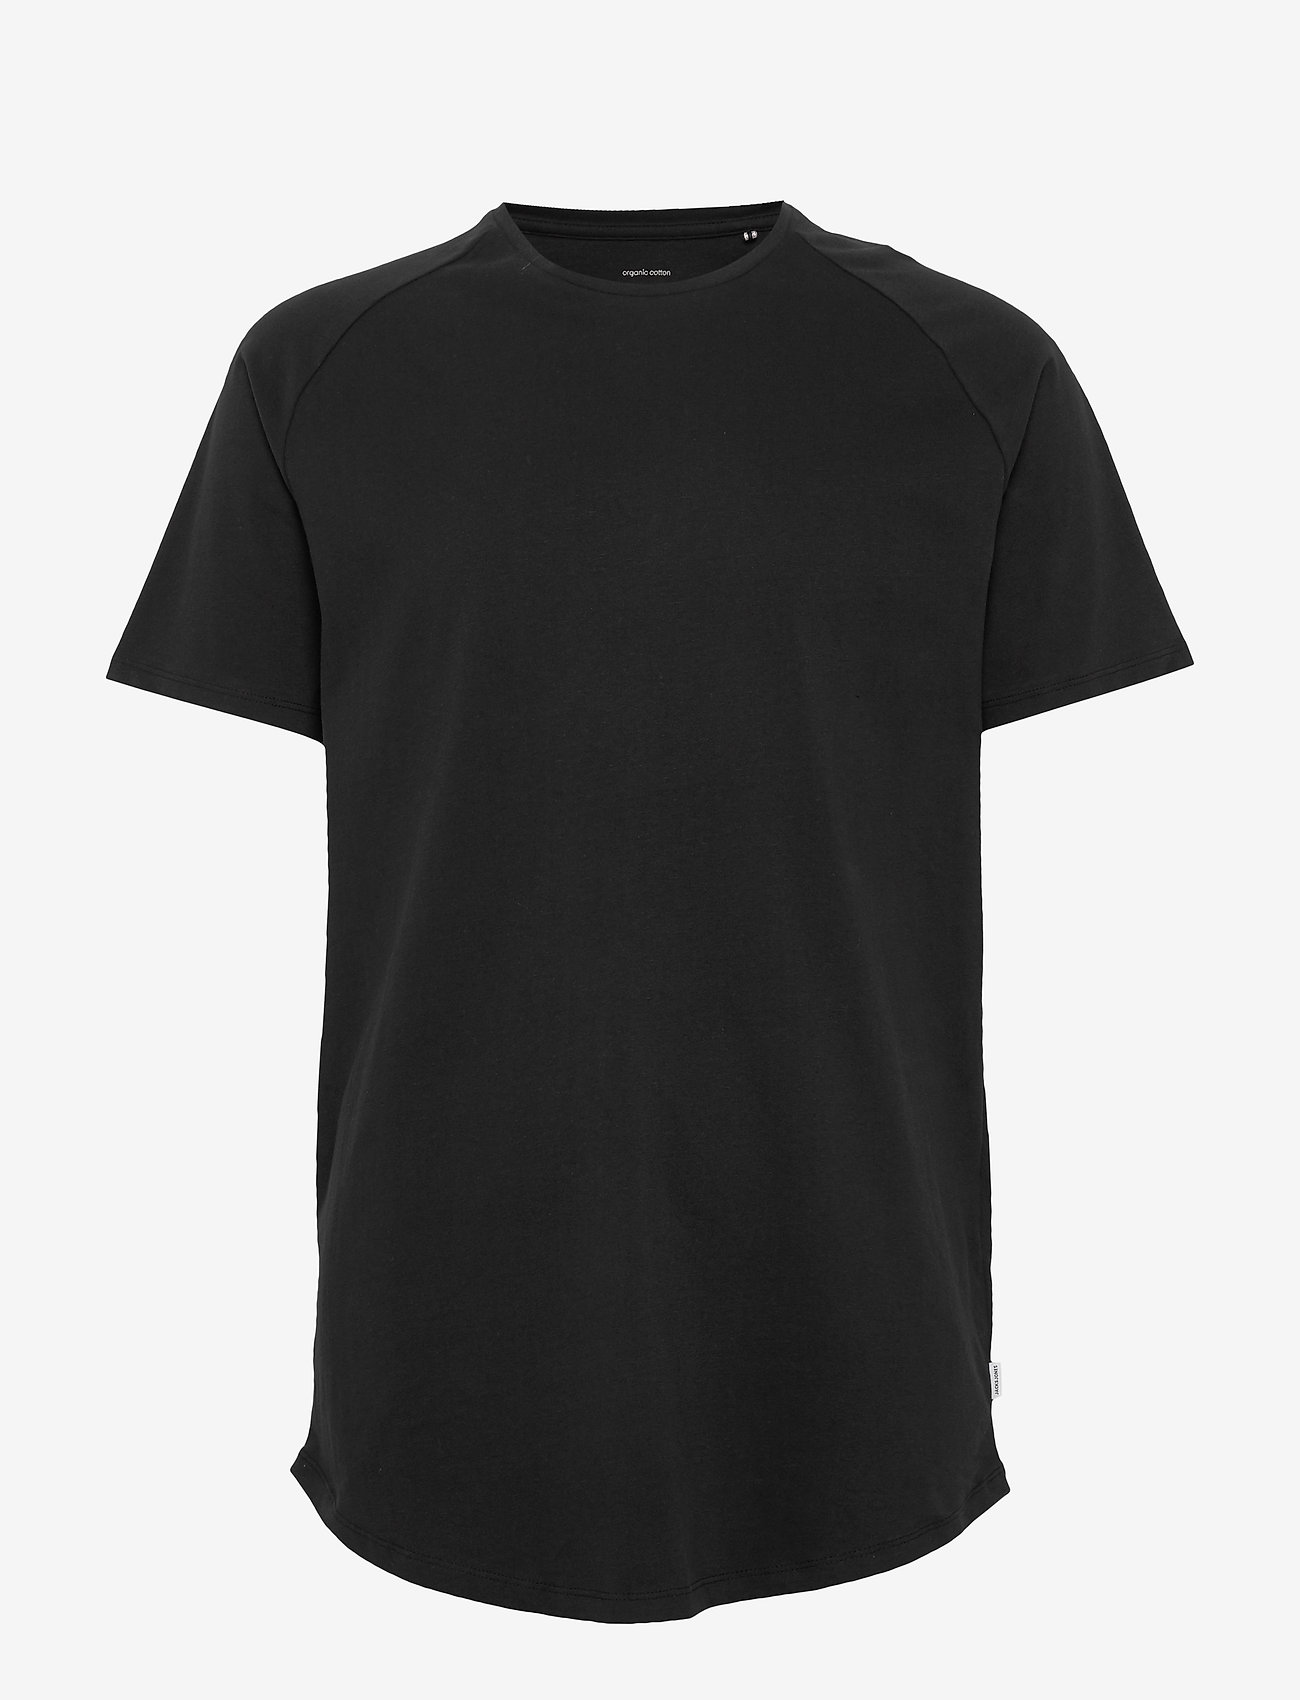 Jack & Jones - JJECURVED TEE SS O-NECK - basic t-shirts - black - 0